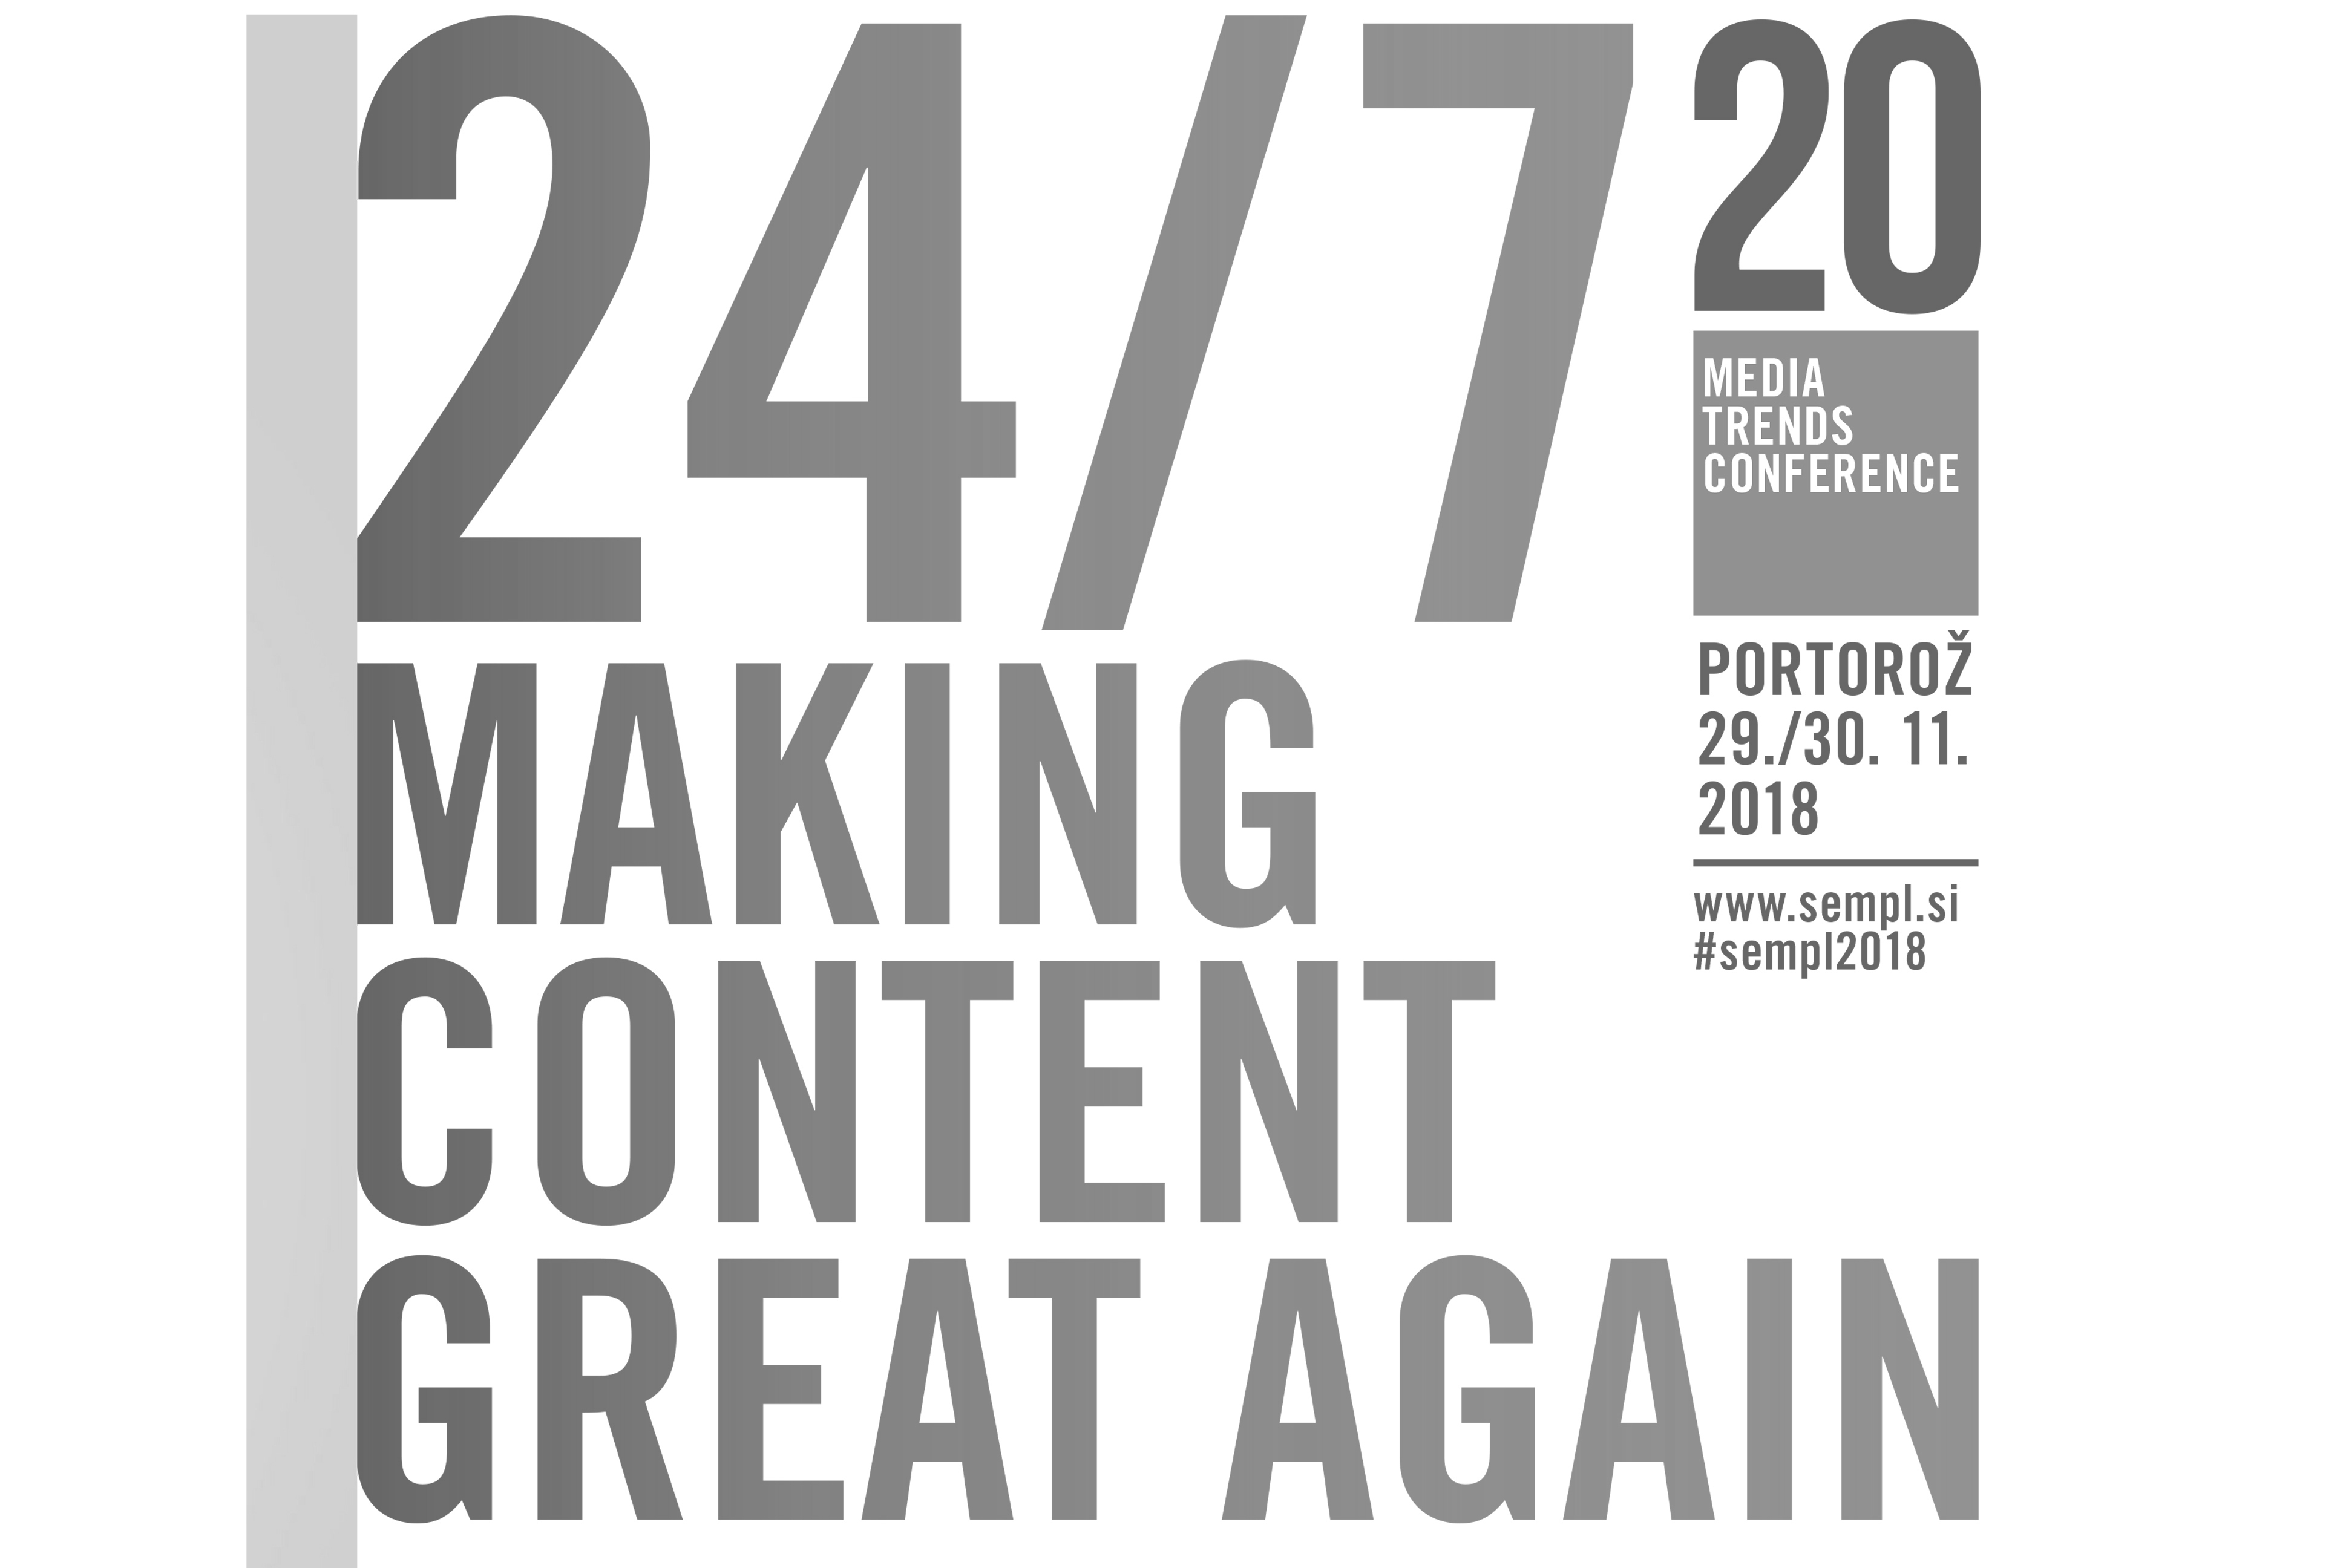 SEMPL24/7: MAKING CONTENT GREAT AGAIN